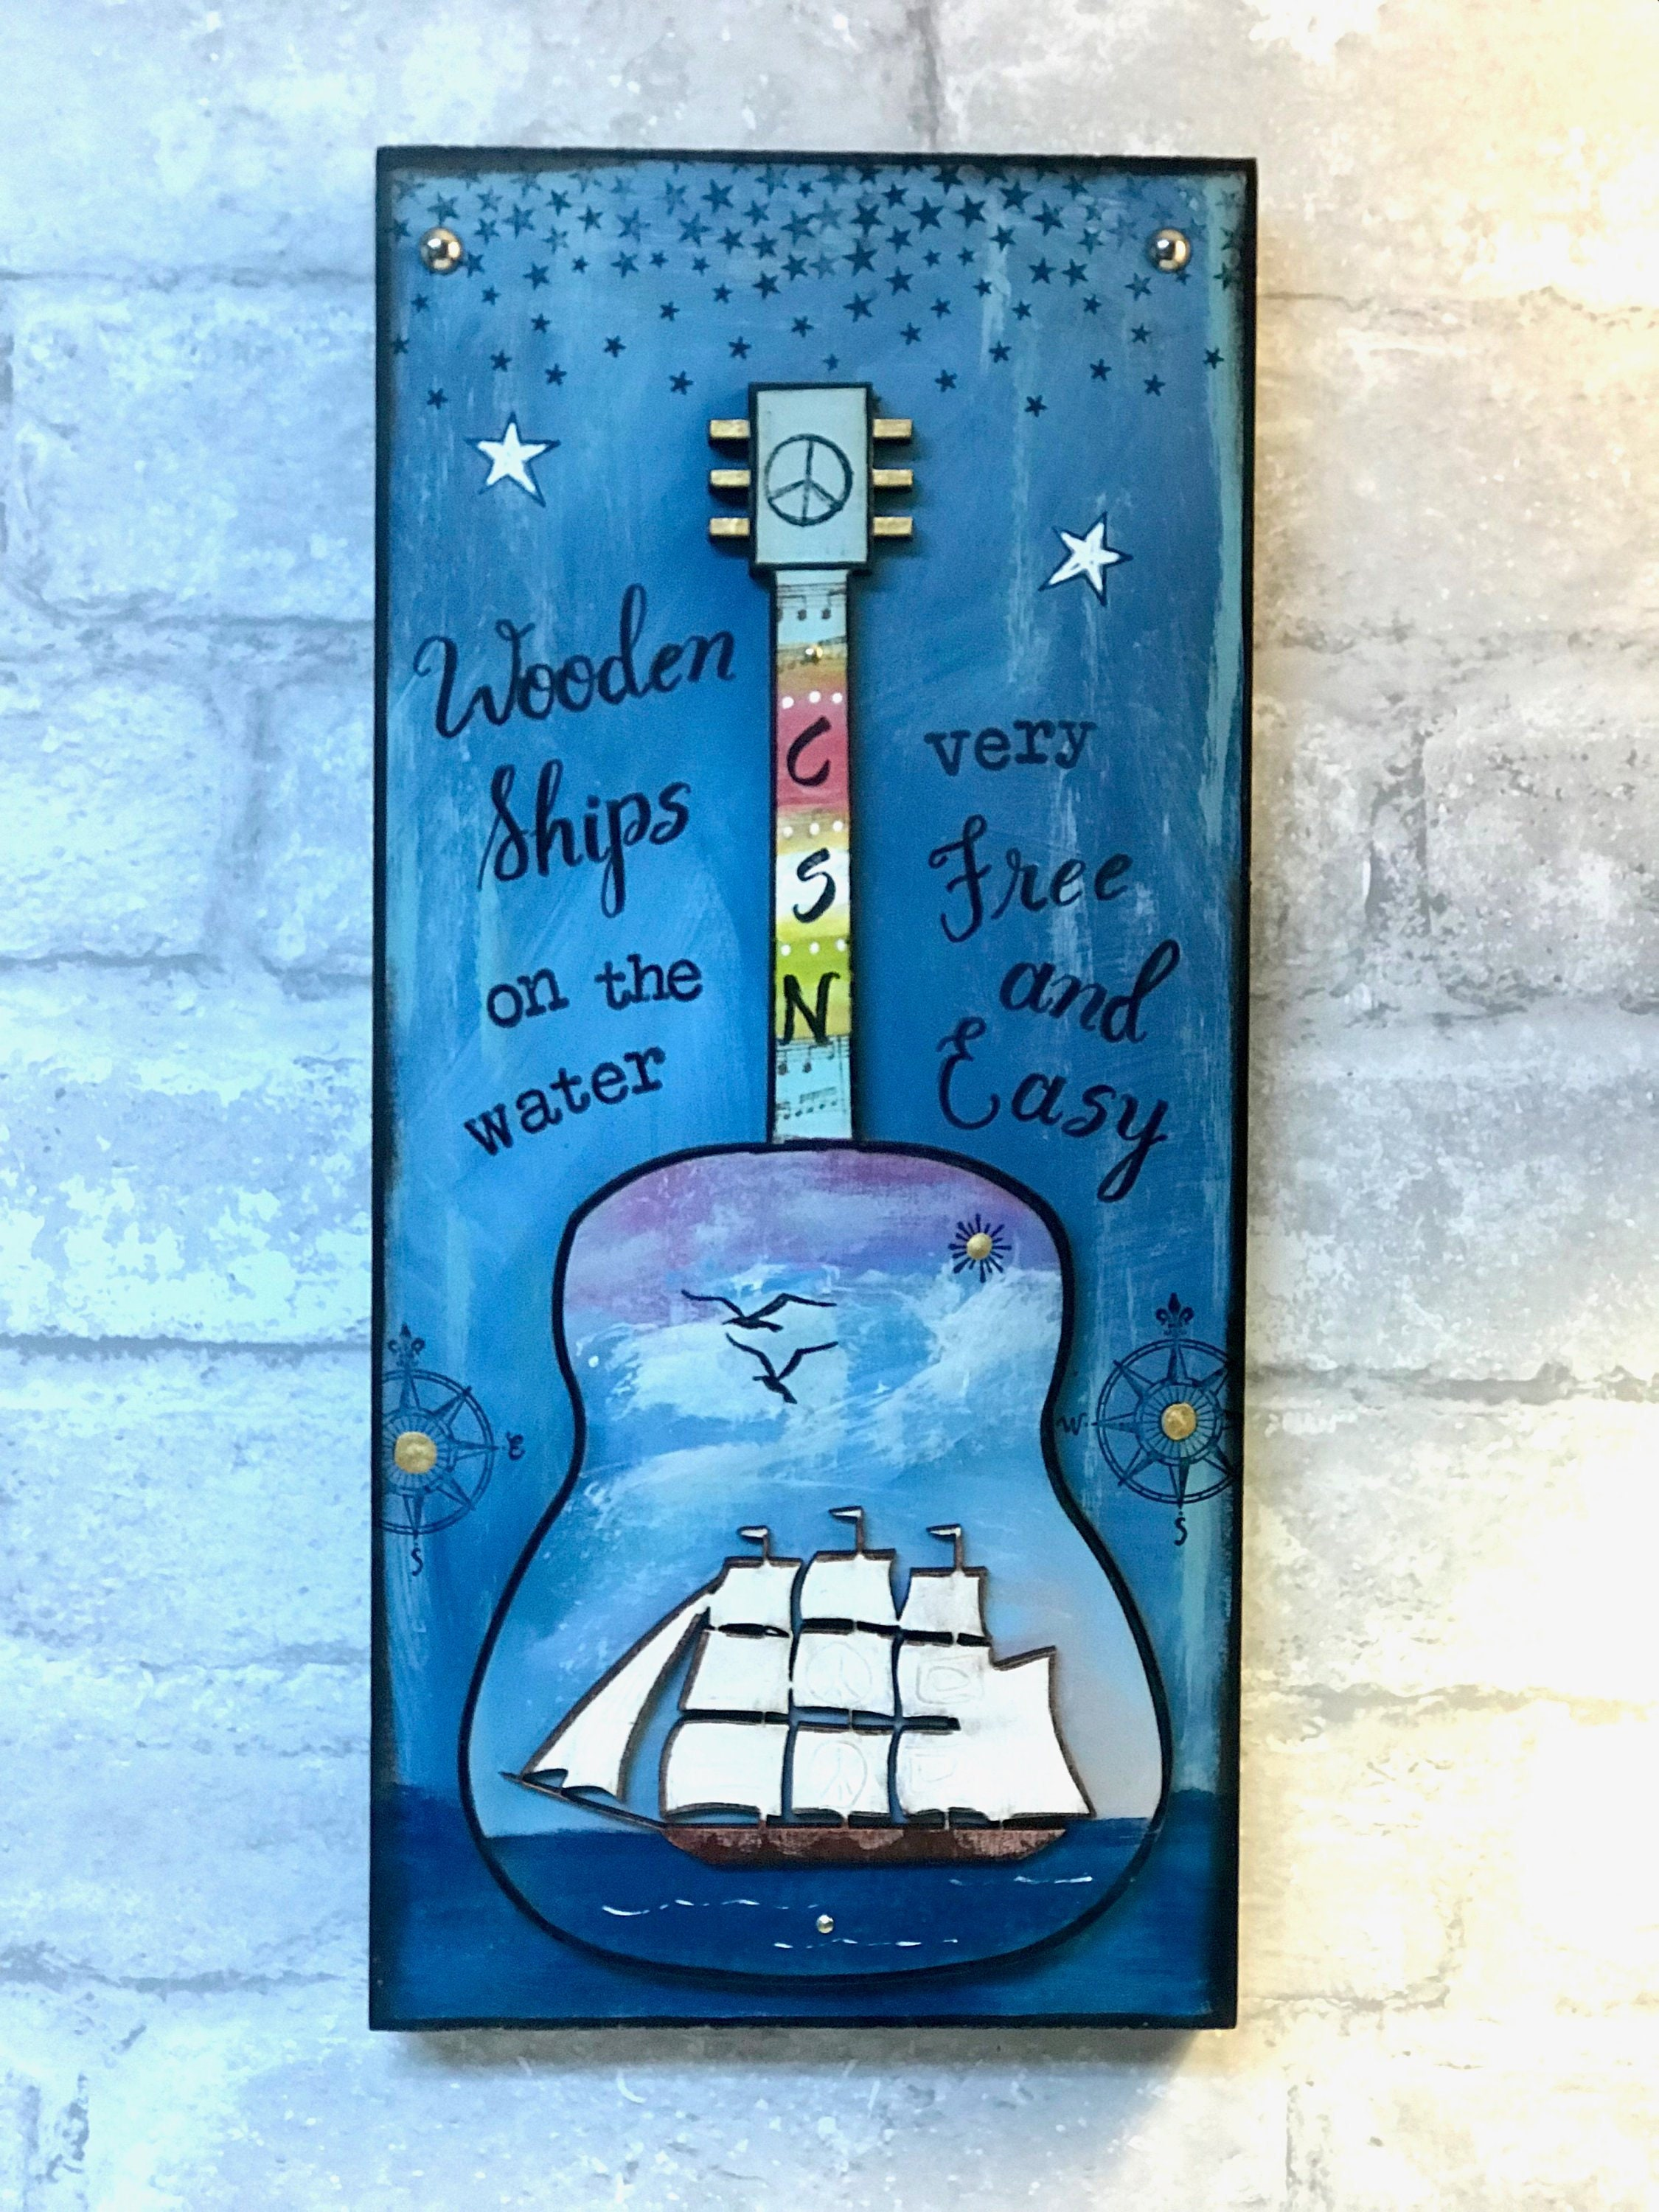 Crosby Stills Nash Guitar Wooden Ships Free And Easy Guitar Plaque Sailor Nautical Gift For Dad Ocean Musician Under 50 Man Cave